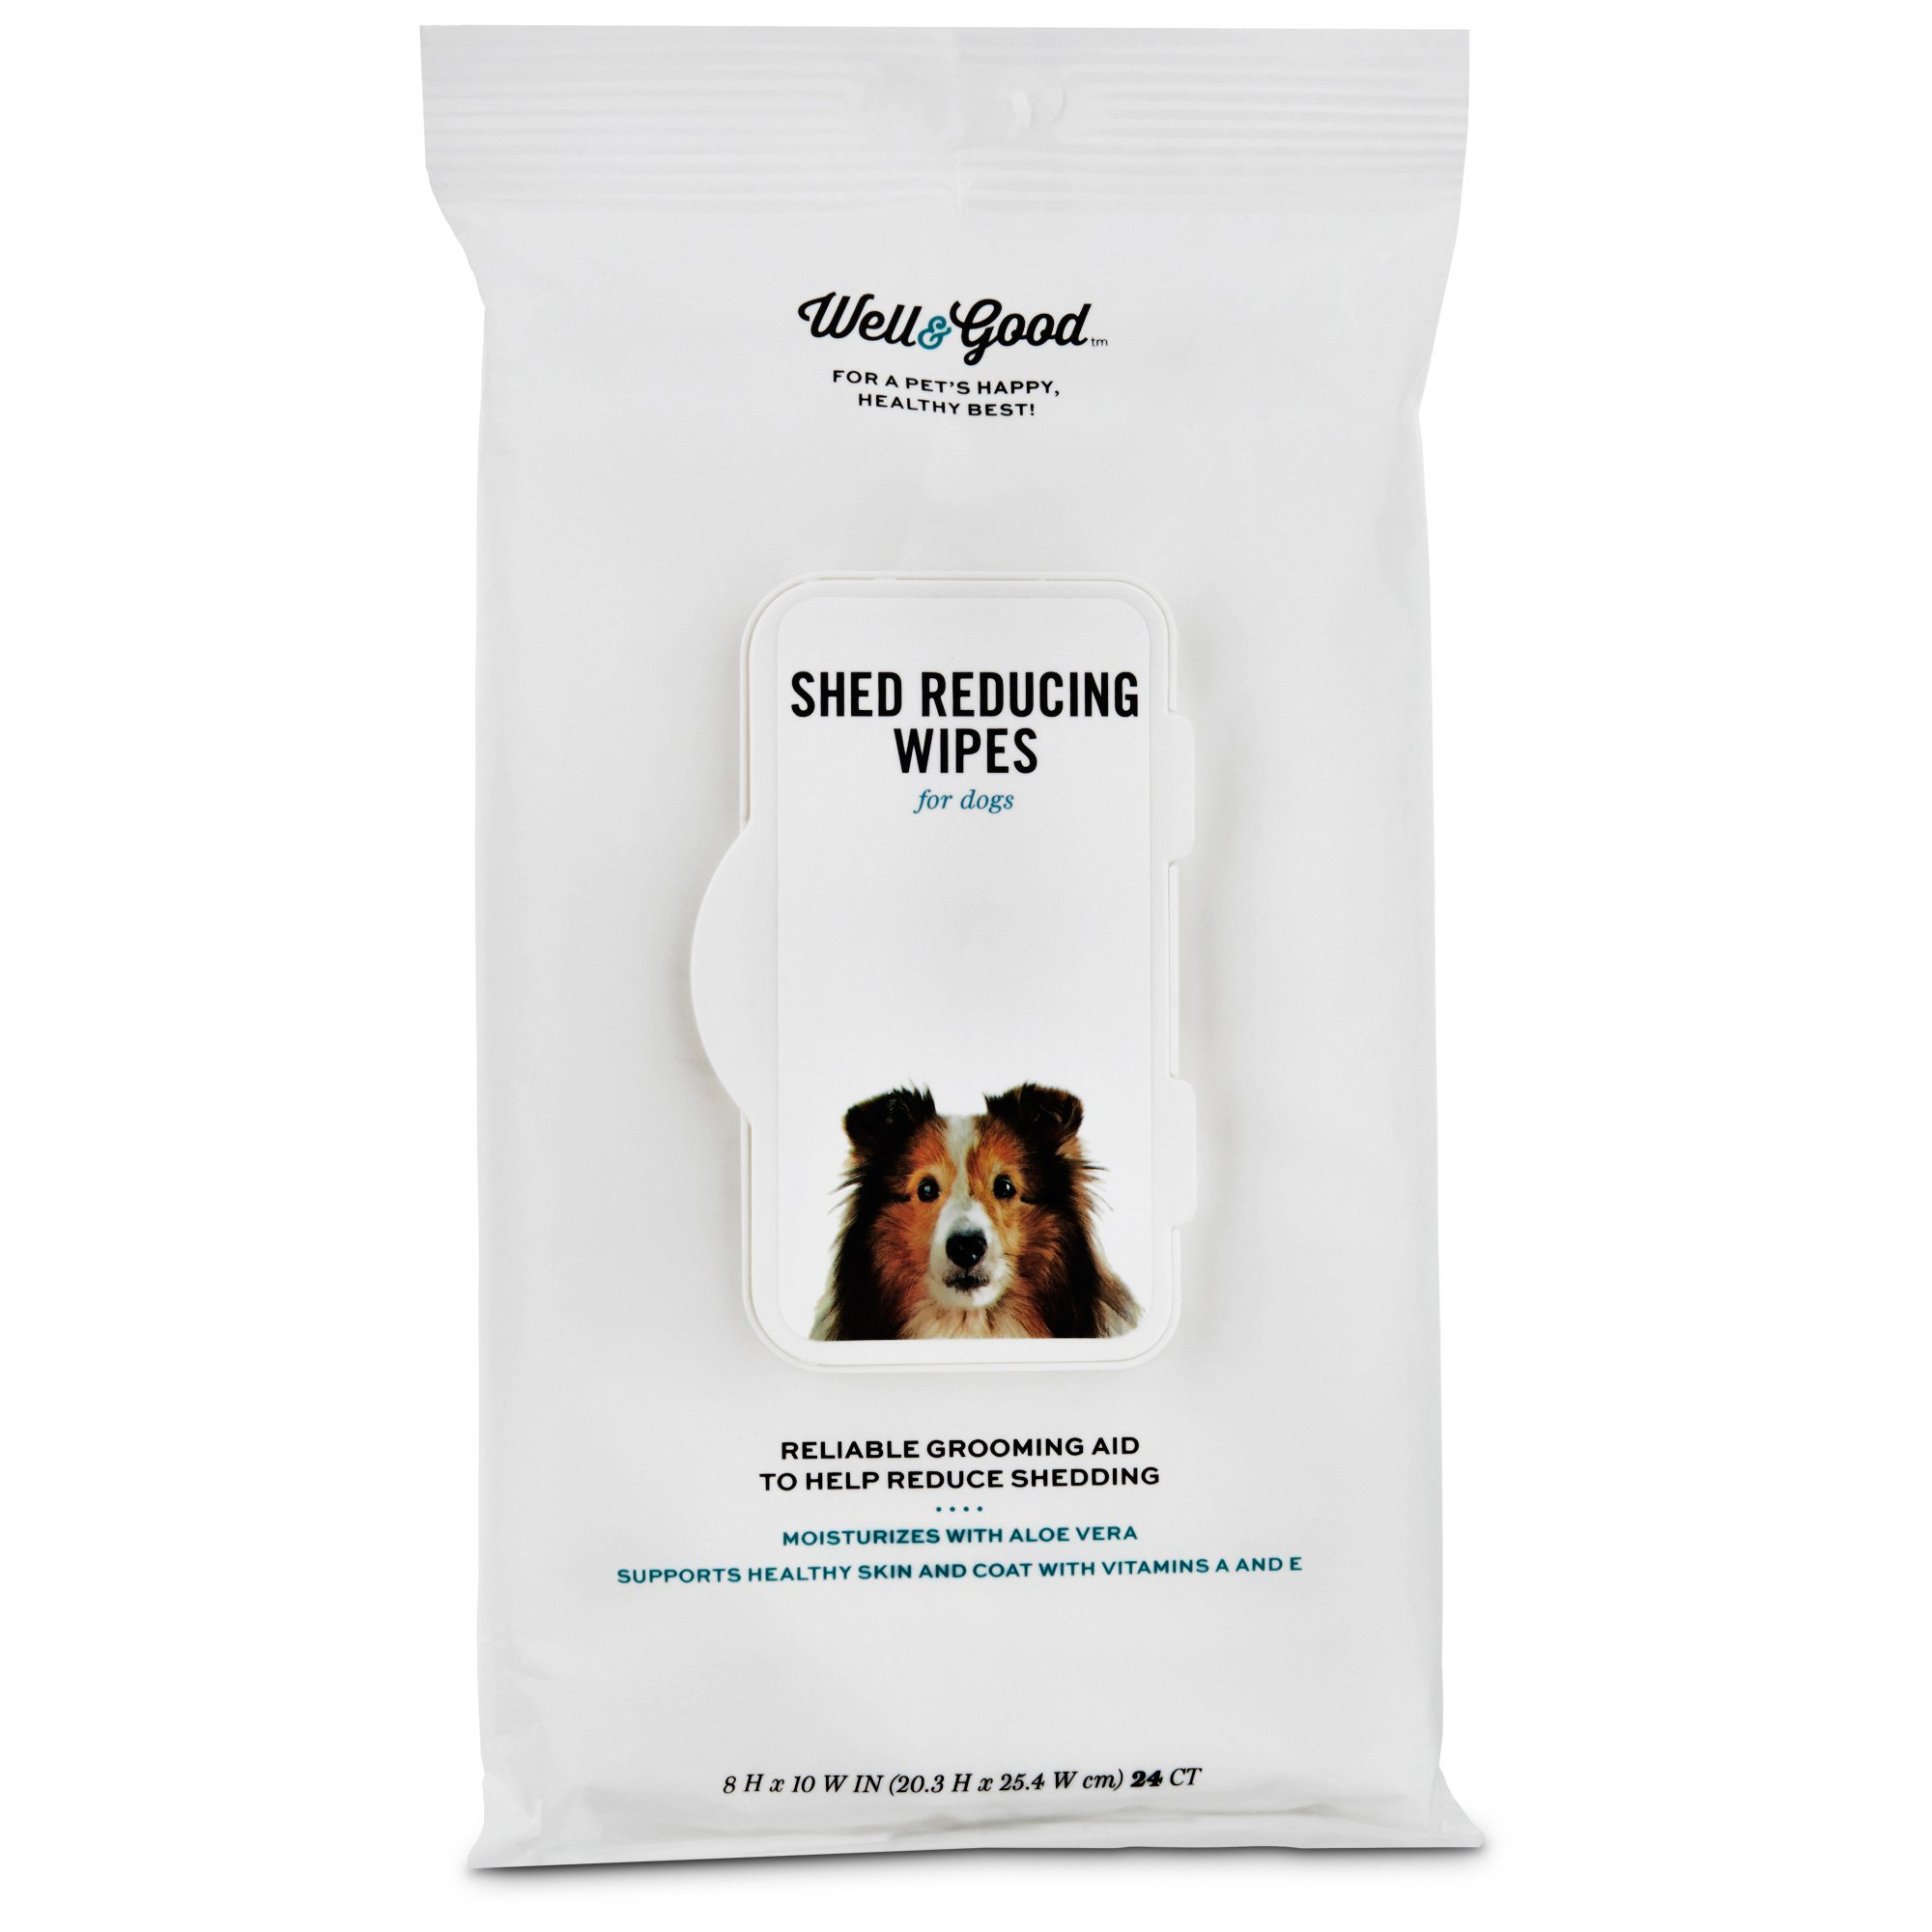 Well & Good Shed Reducing Dog Wipes, Pack of 24